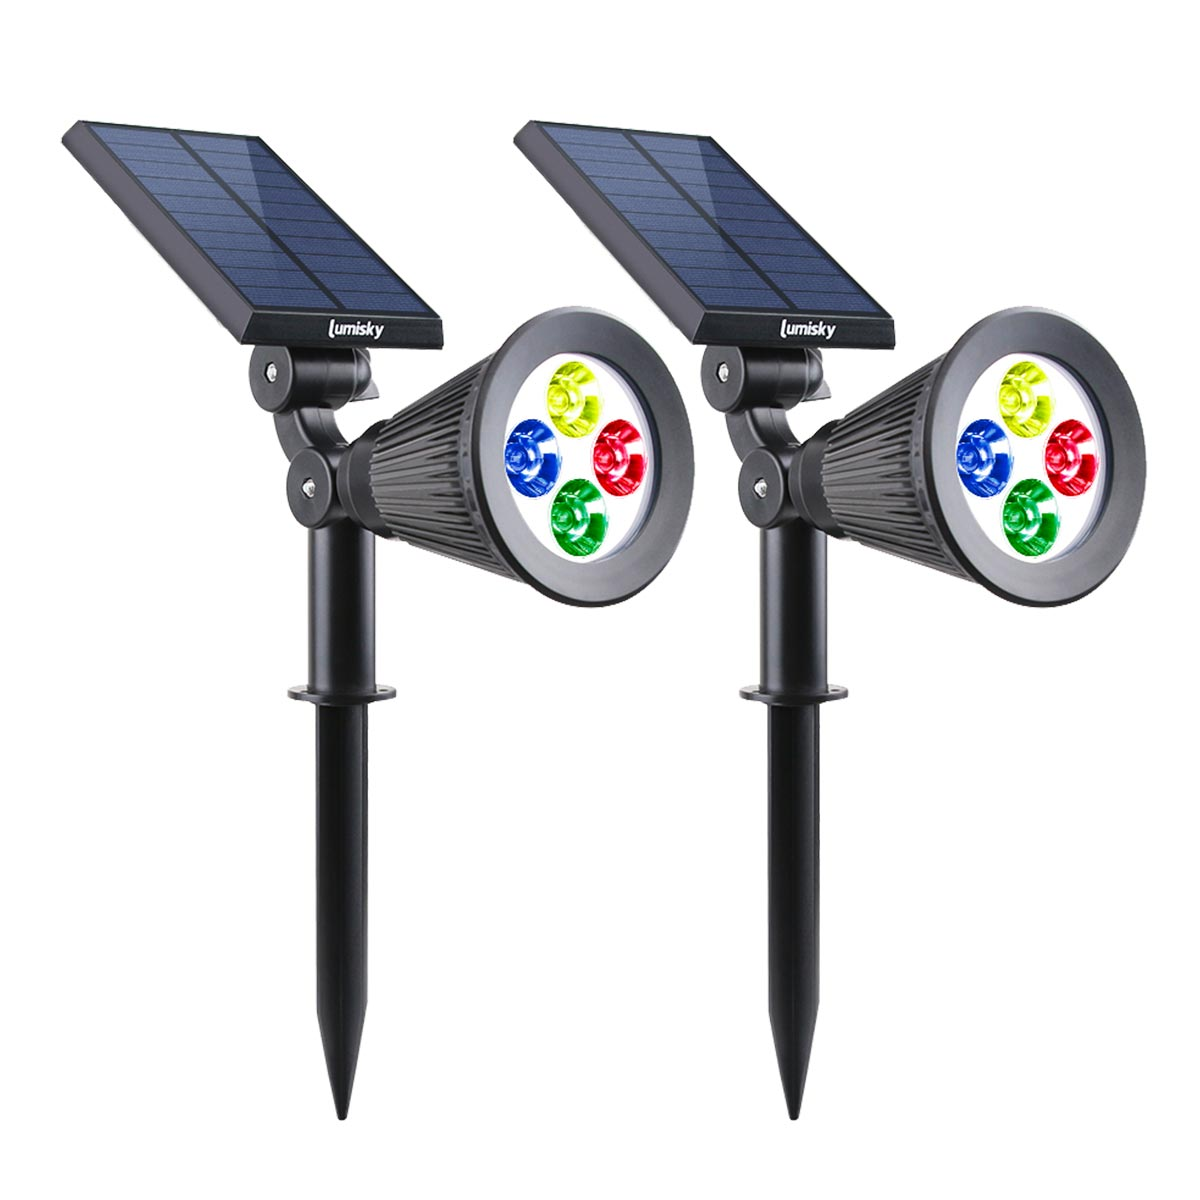 Lot de 2 spots solaires projecteur 2 en 1 à piquer ou à fixer dimmable LED multicolore SPIKY C34 H42cm - REDDECO.com